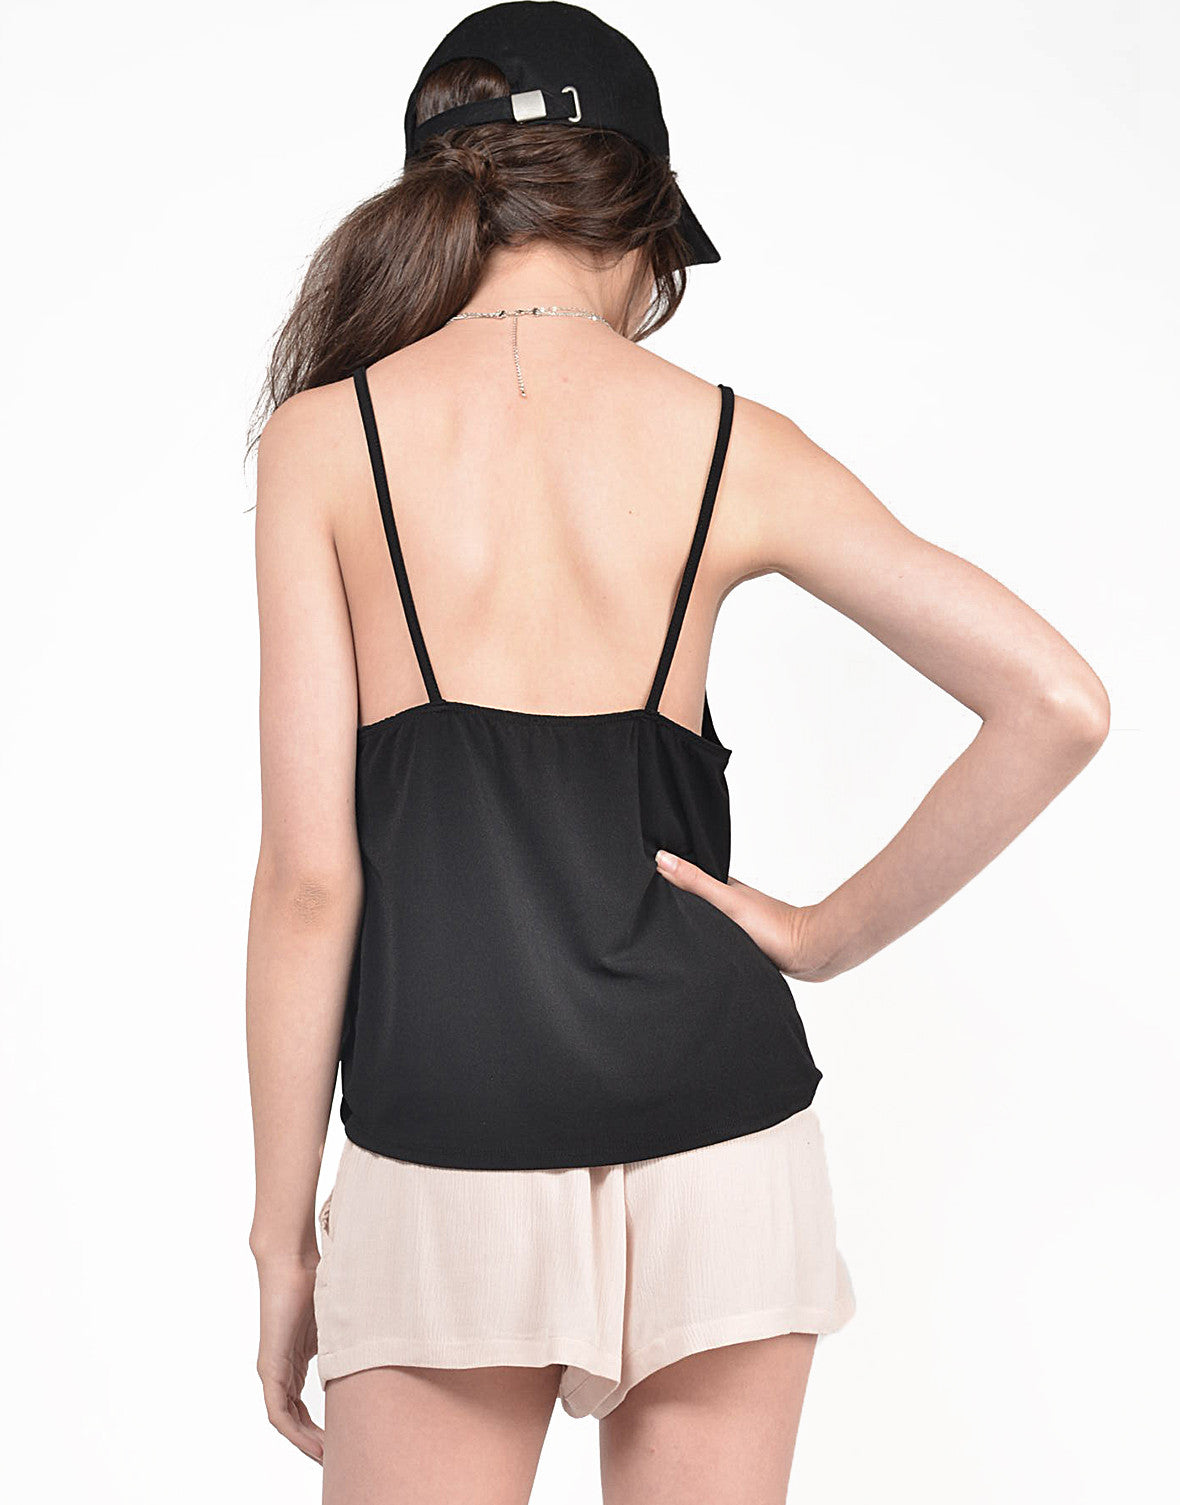 Back View of Overlapping Cami Top